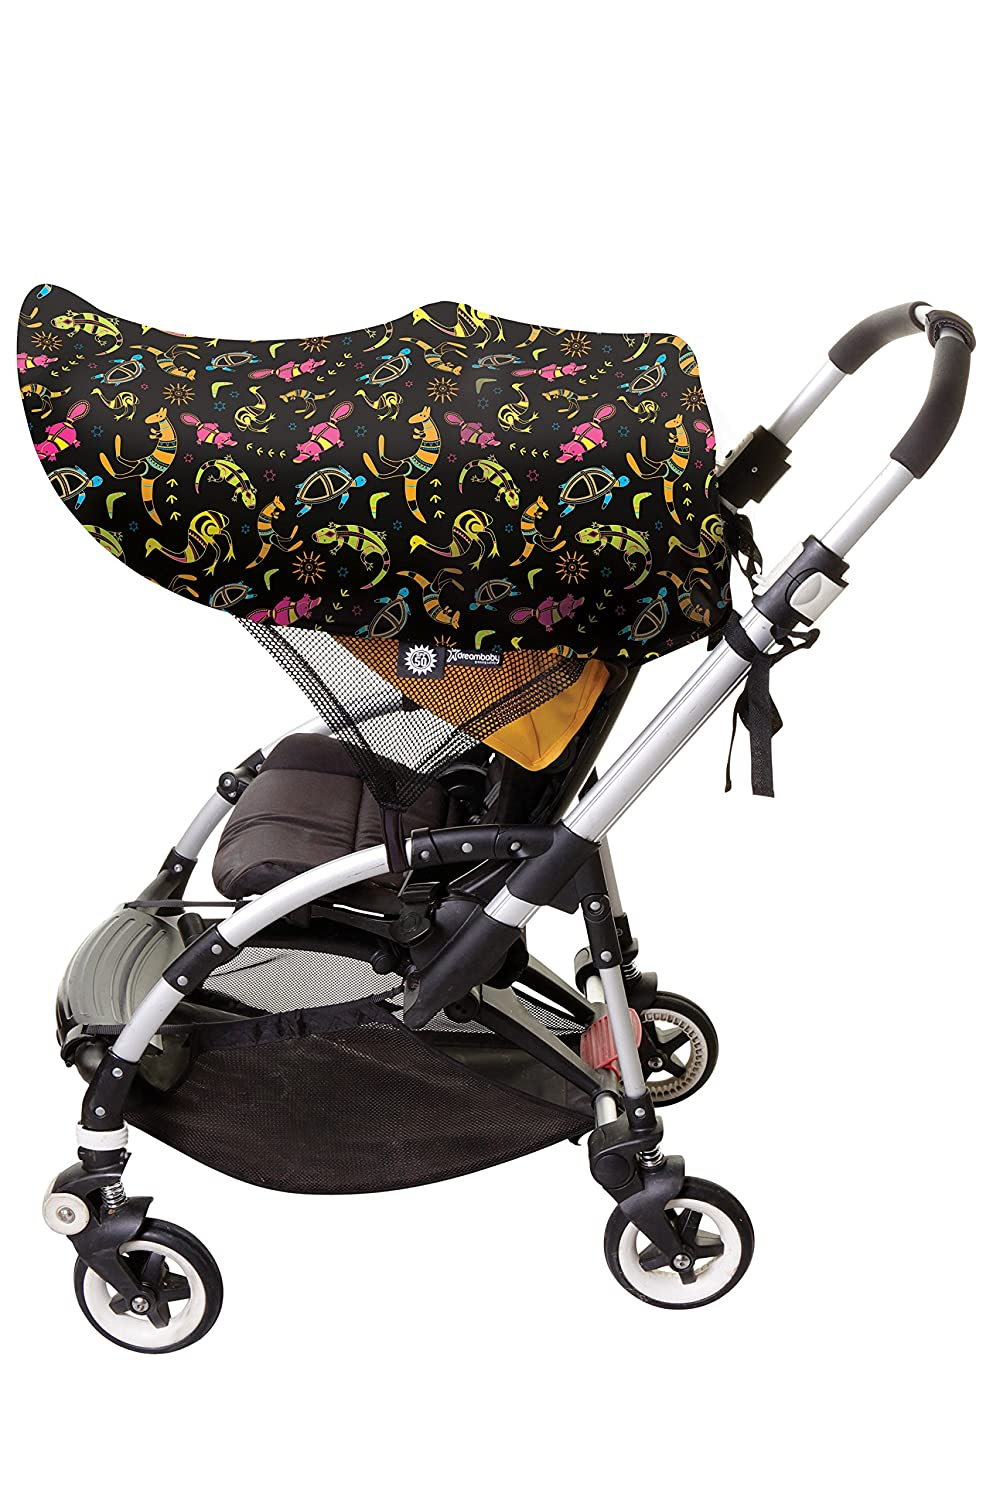 Dreambaby Buddy Extend Stroller (Large, Shade) F286